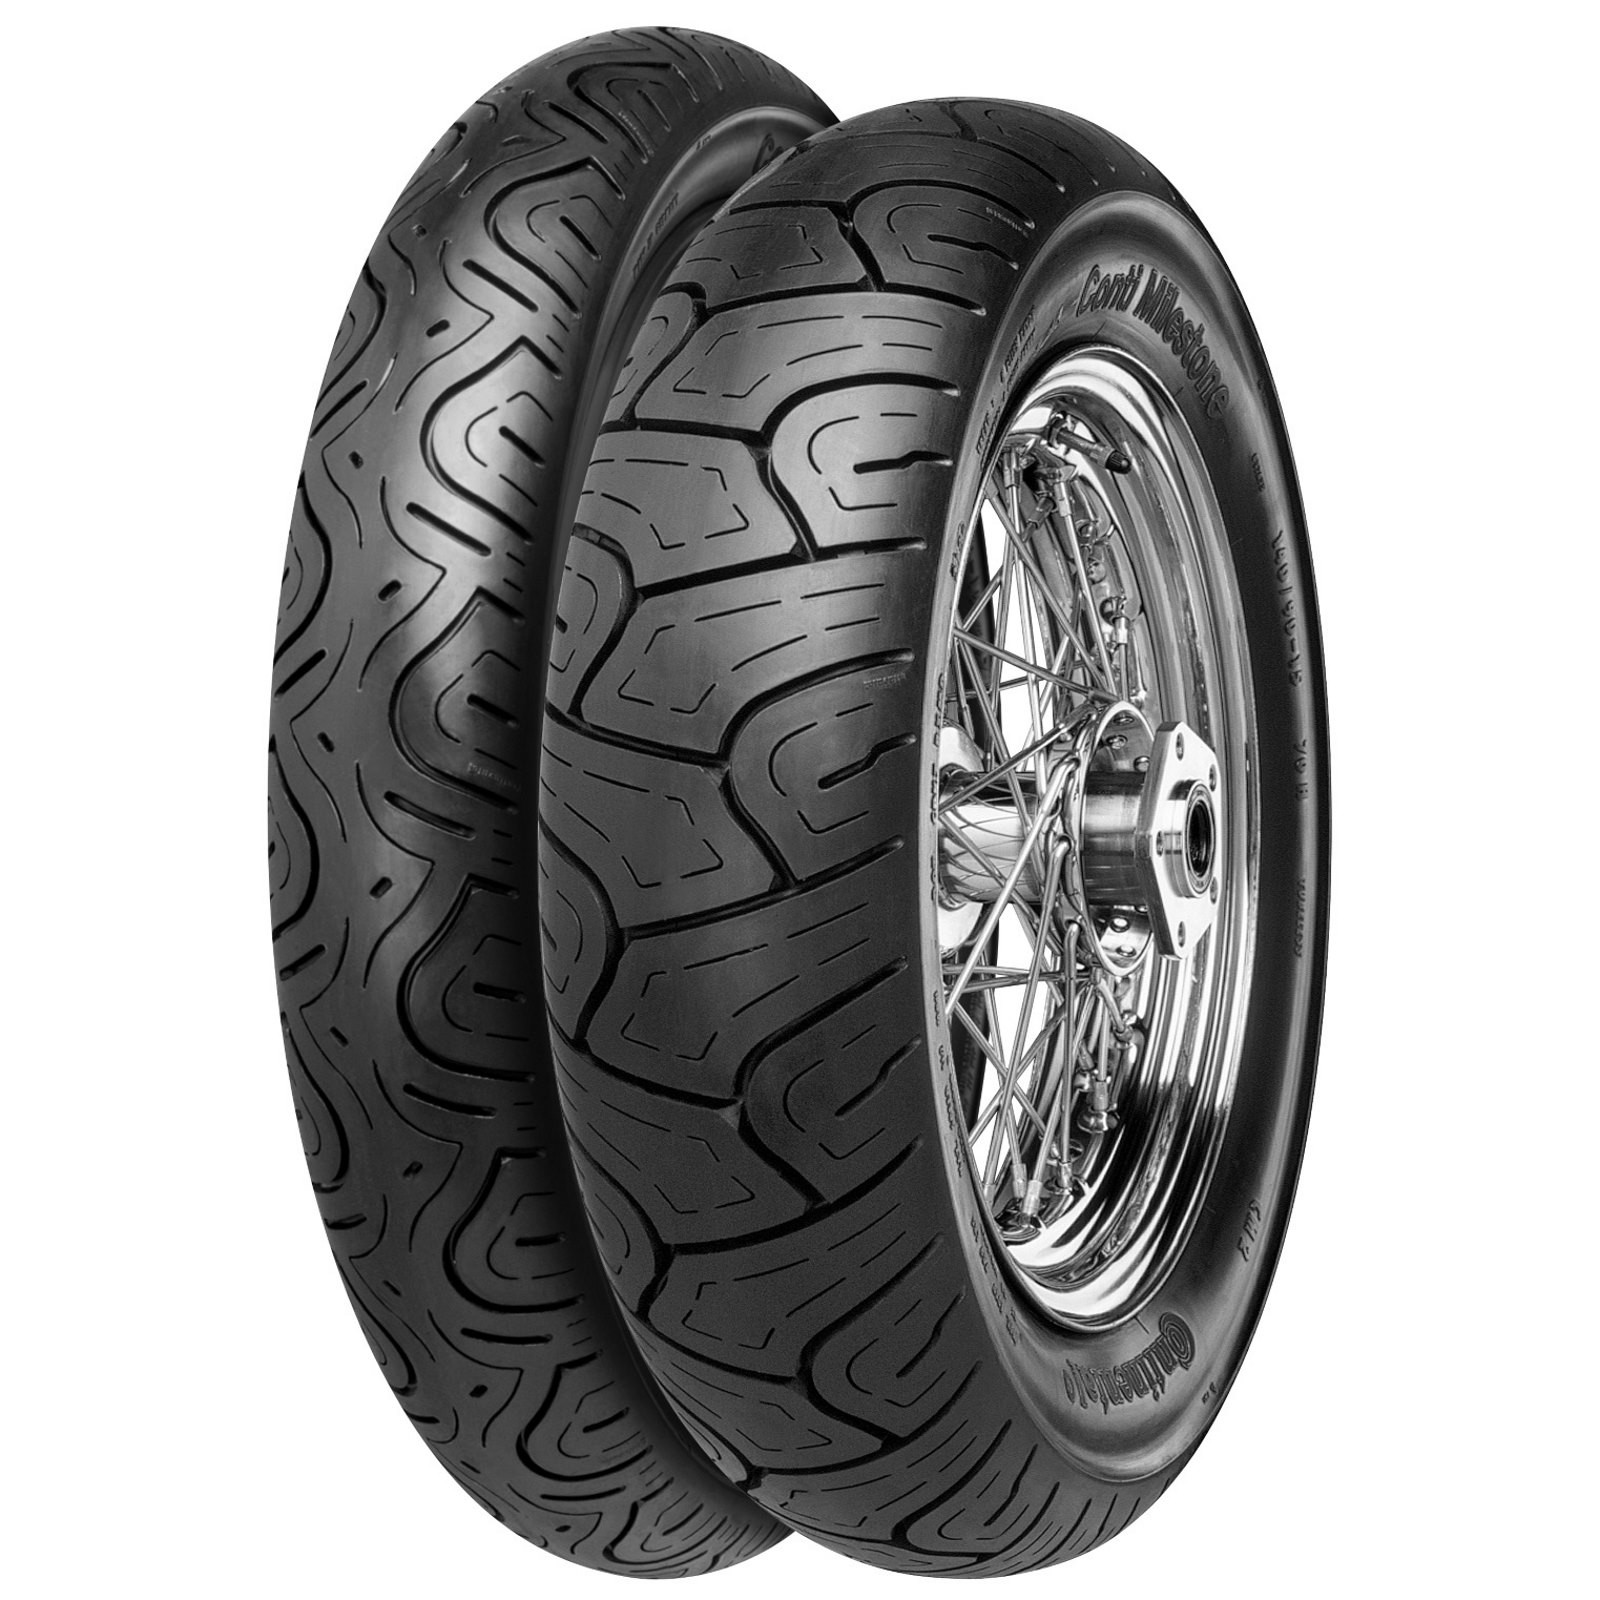 Continental Milestone Tyre CM1 300P18 Front Motorcycle Tyre